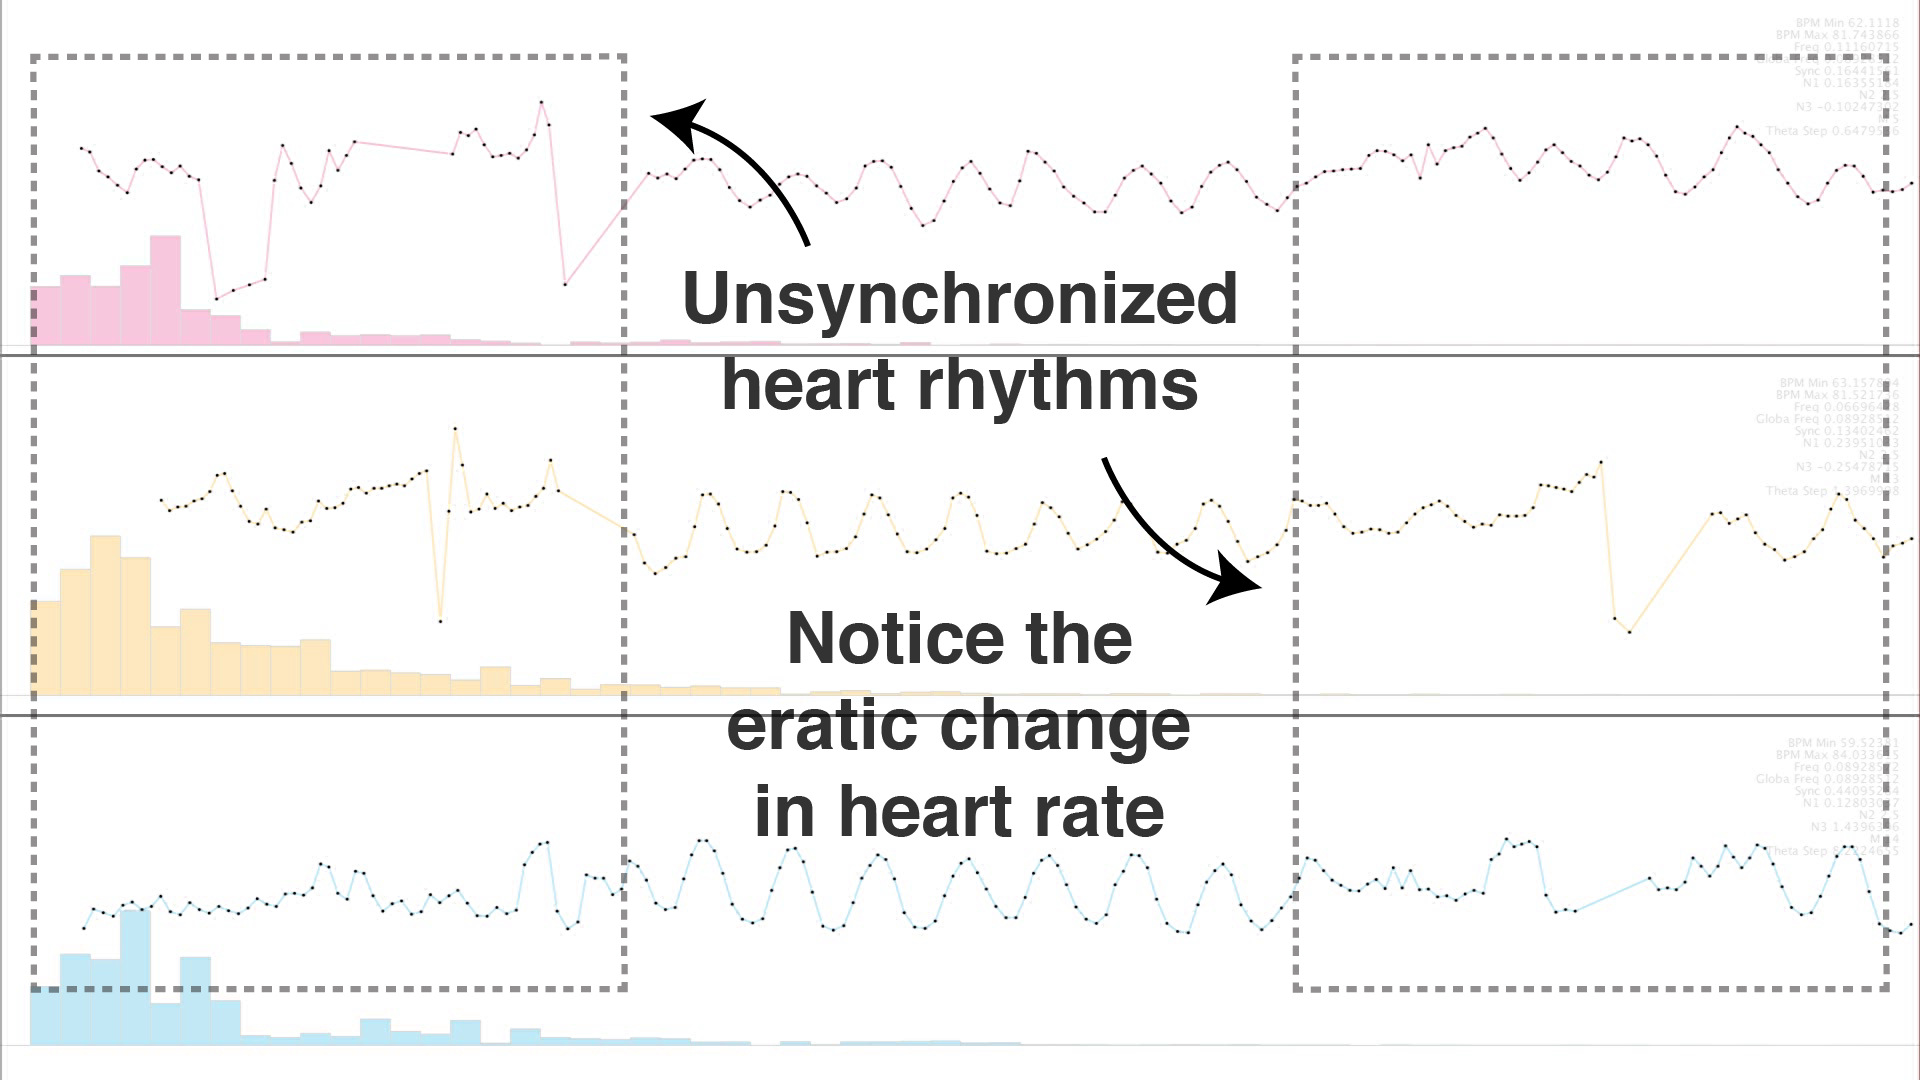 heartsync_graph_4